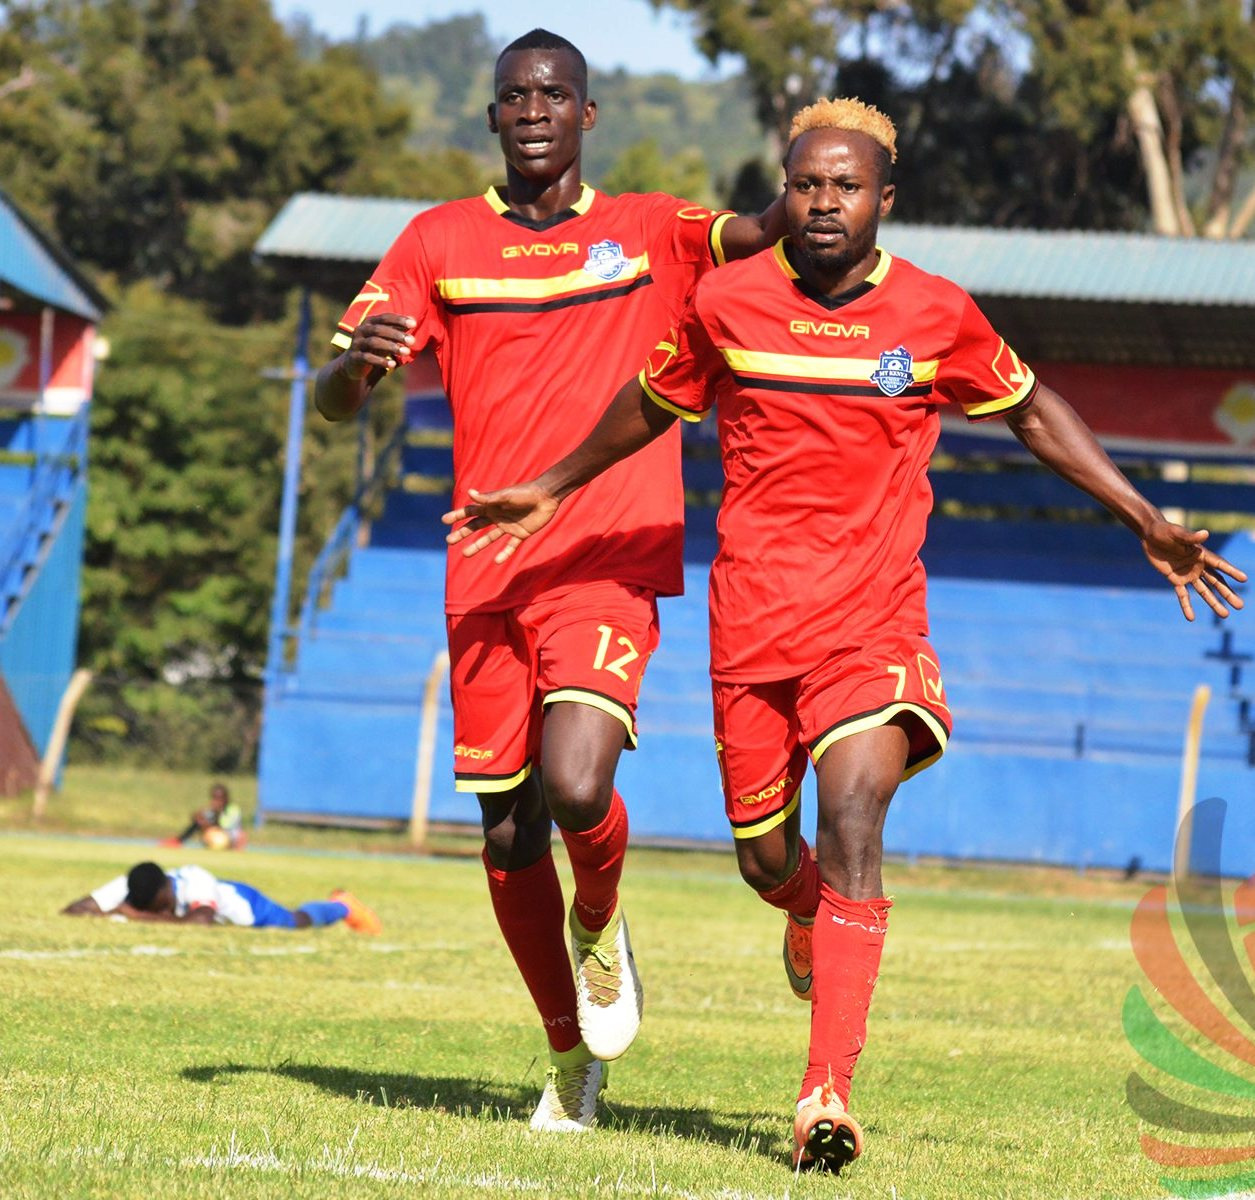 The doomed Mt Kenya United, here celebrating a rare win over AFC Leopards, managed only five victories before the relegation axe struck. The team lived from hand-to-mouth